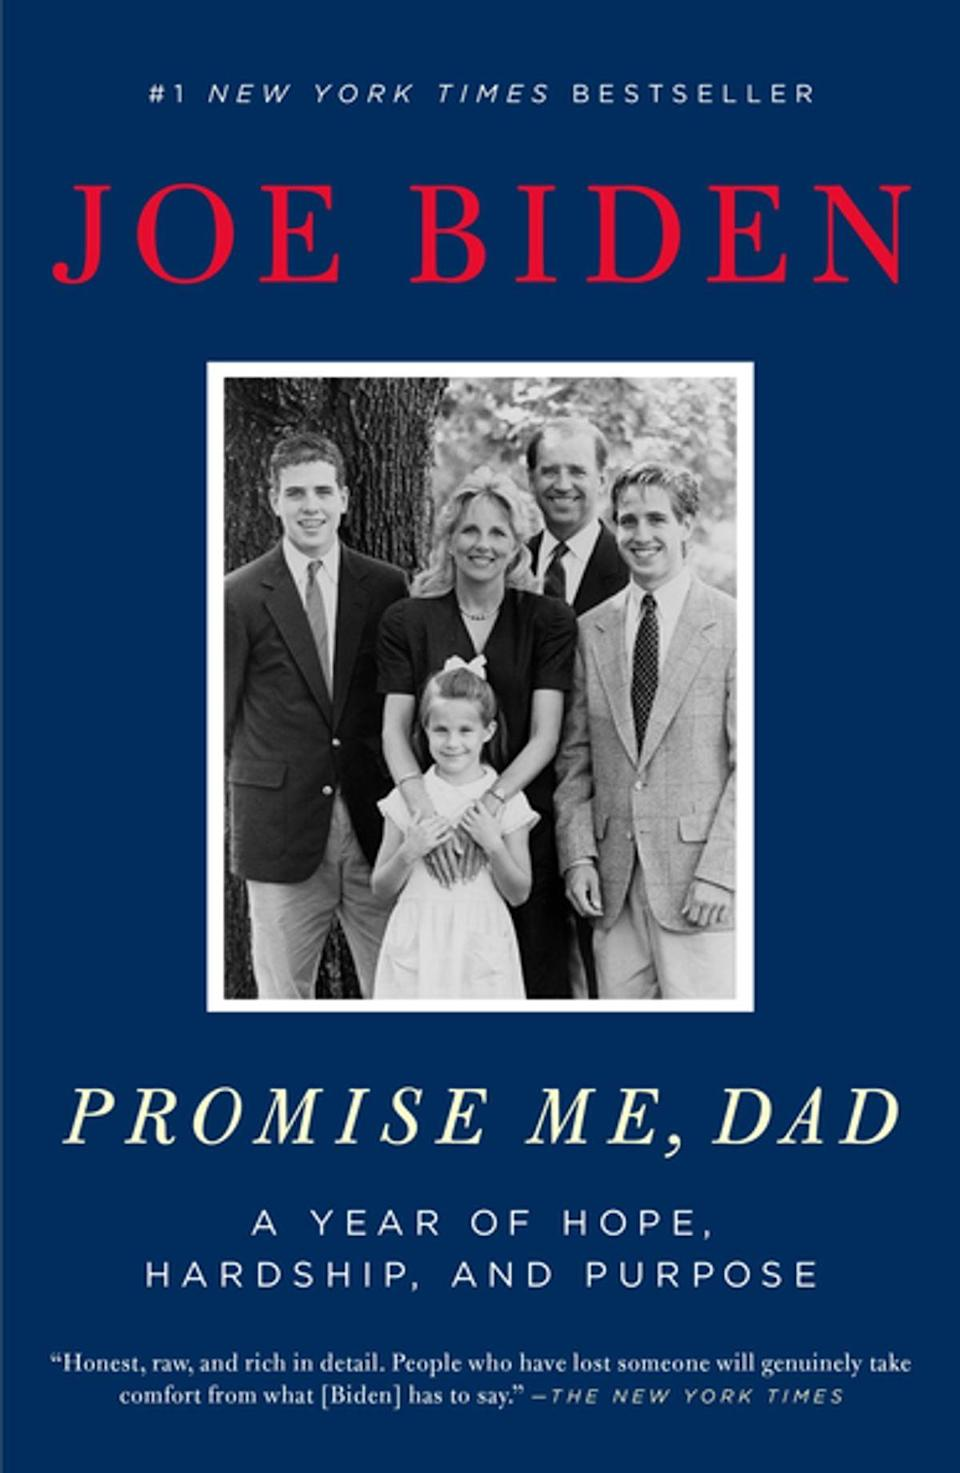 "<p>Imagine going through one of the hardest yet most momentous years of your life all at the same time. <span><strong>Promise Me, Dad: A Year of Hope, Hardship, and Purpose</strong></span> ($15, originally $18) by <a class=""link rapid-noclick-resp"" href=""https://www.popsugar.com/Joe-Biden"" rel=""nofollow noopener"" target=""_blank"" data-ylk=""slk:Joe Biden"">Joe Biden</a> is an ode to his elder son, Beau, and the promise he made to his son. From career to family, Biden pens it all in this moving book about a year that changed his life. </p>"